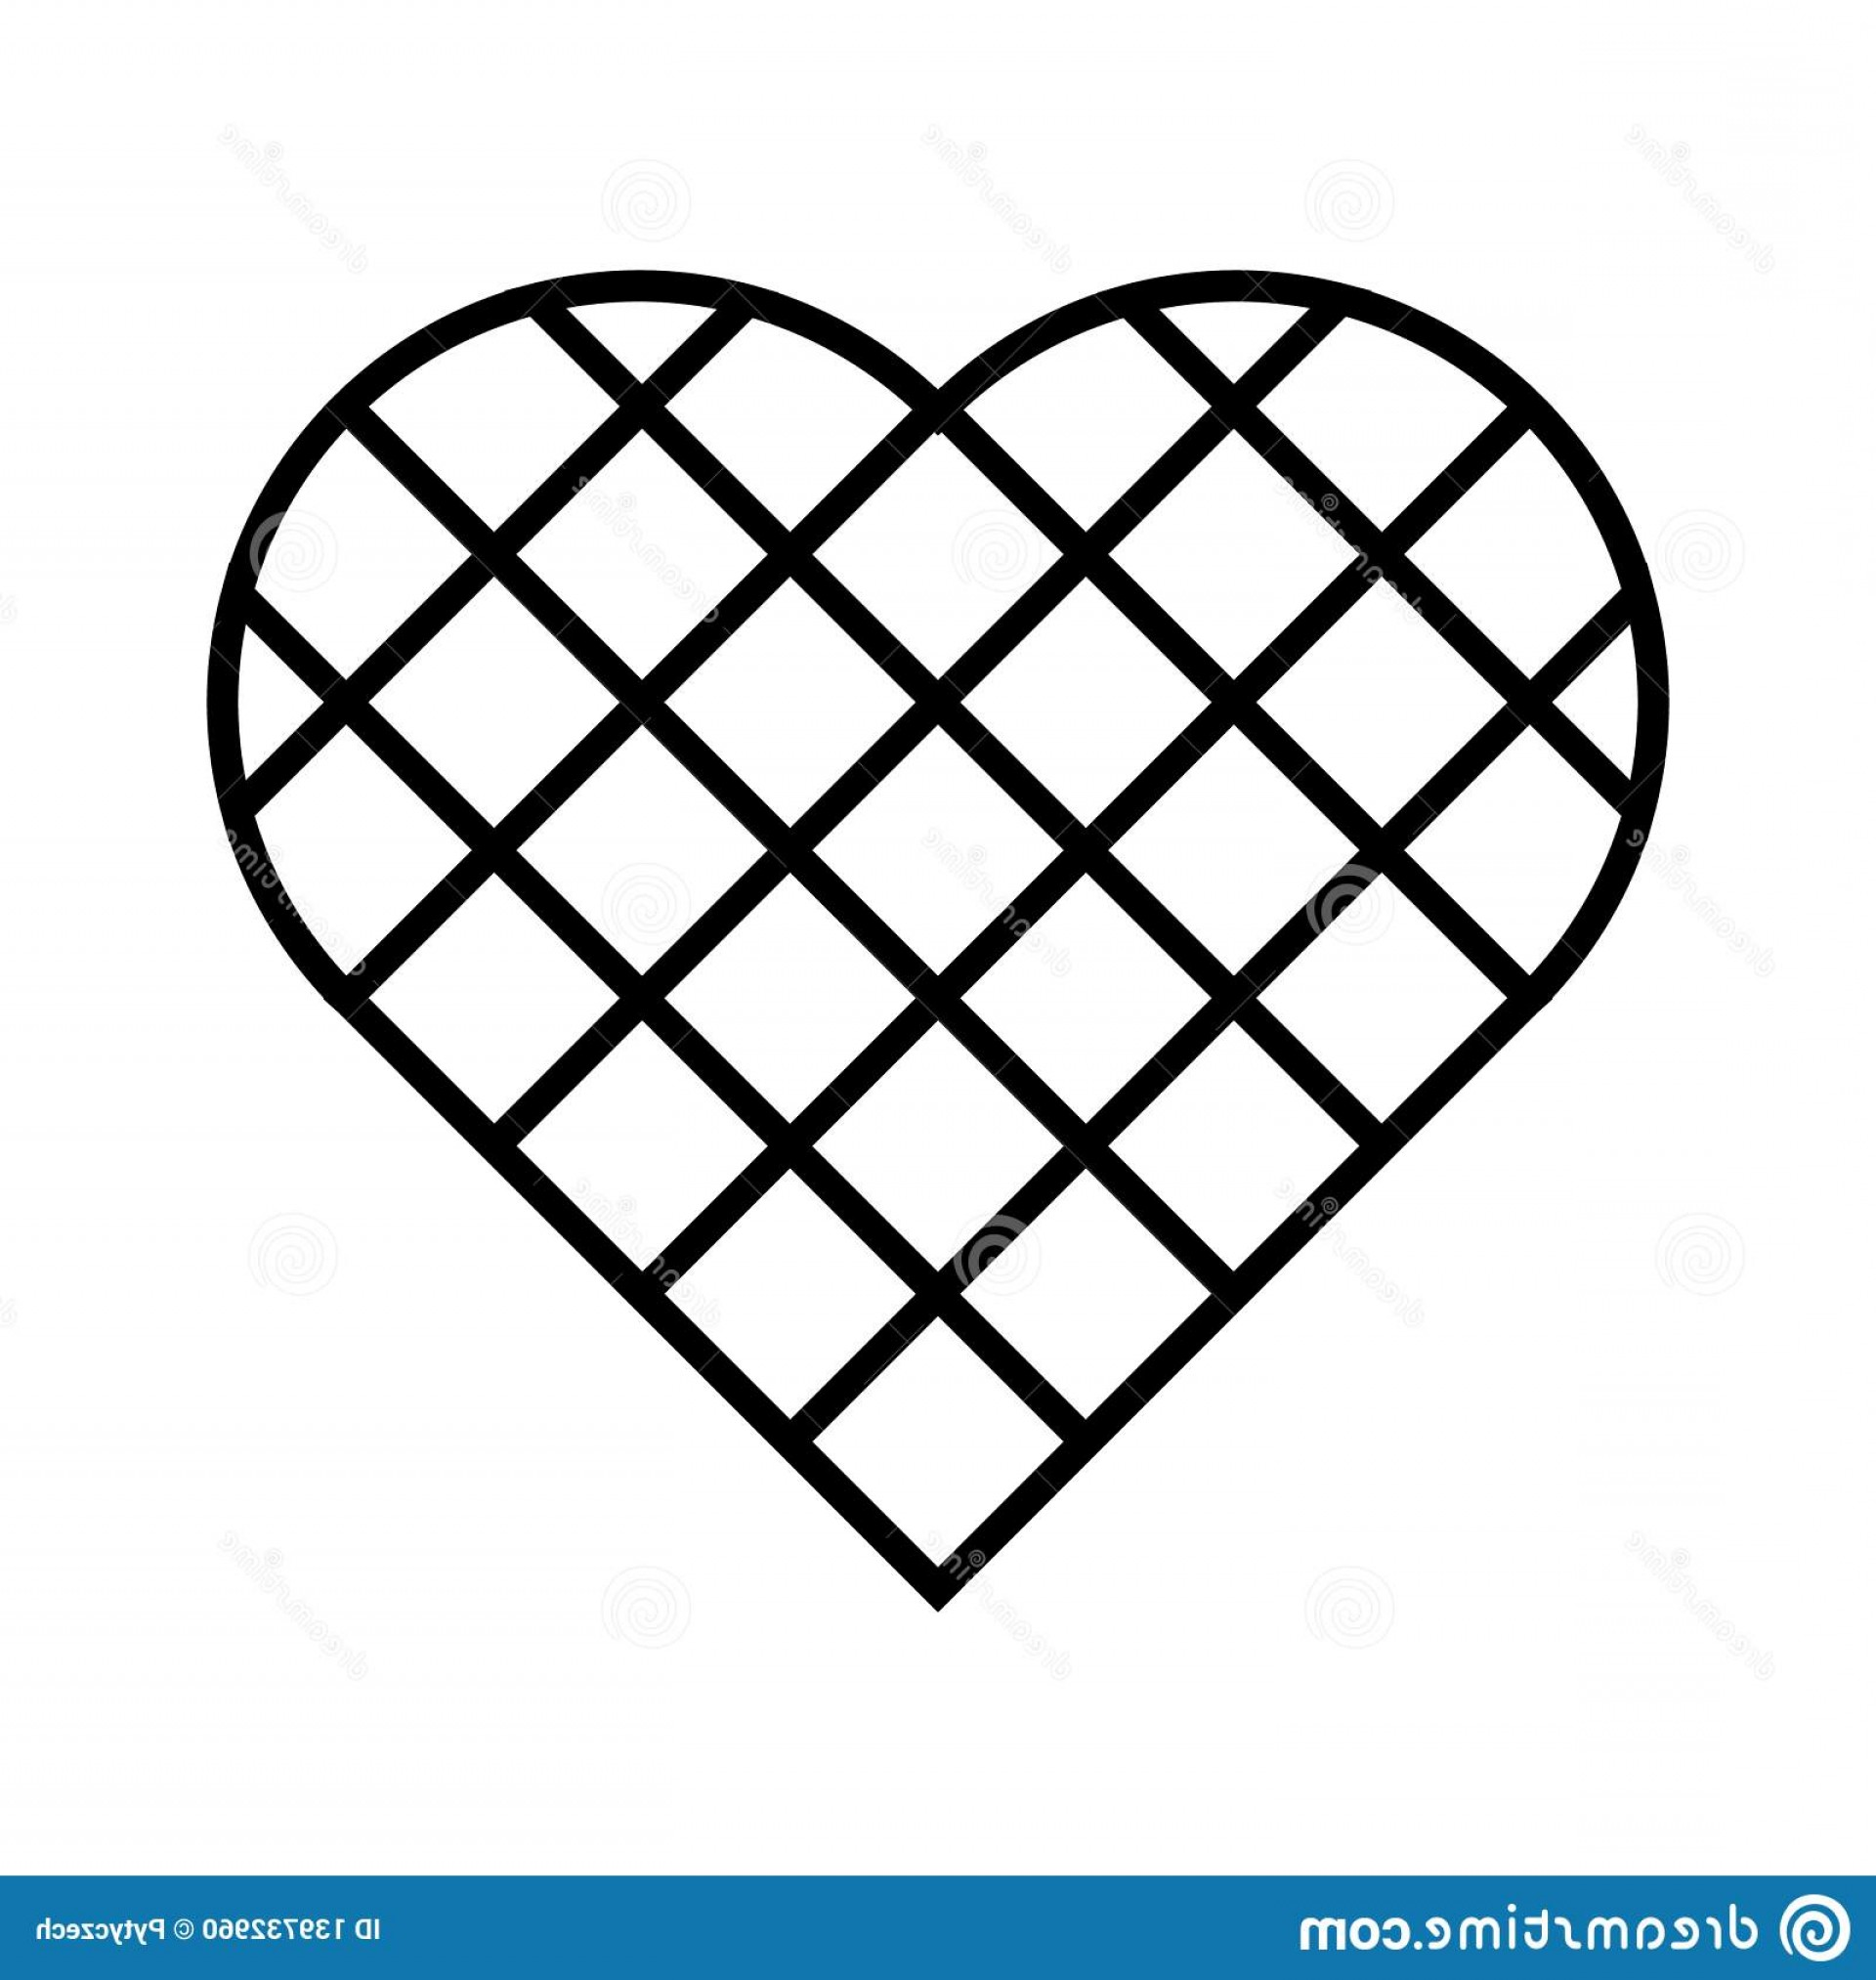 Vector Checkered Flag Heart: Black Checkered Heart Square Grid Diagonal Arrangement Simple Flat Vector Icon Image